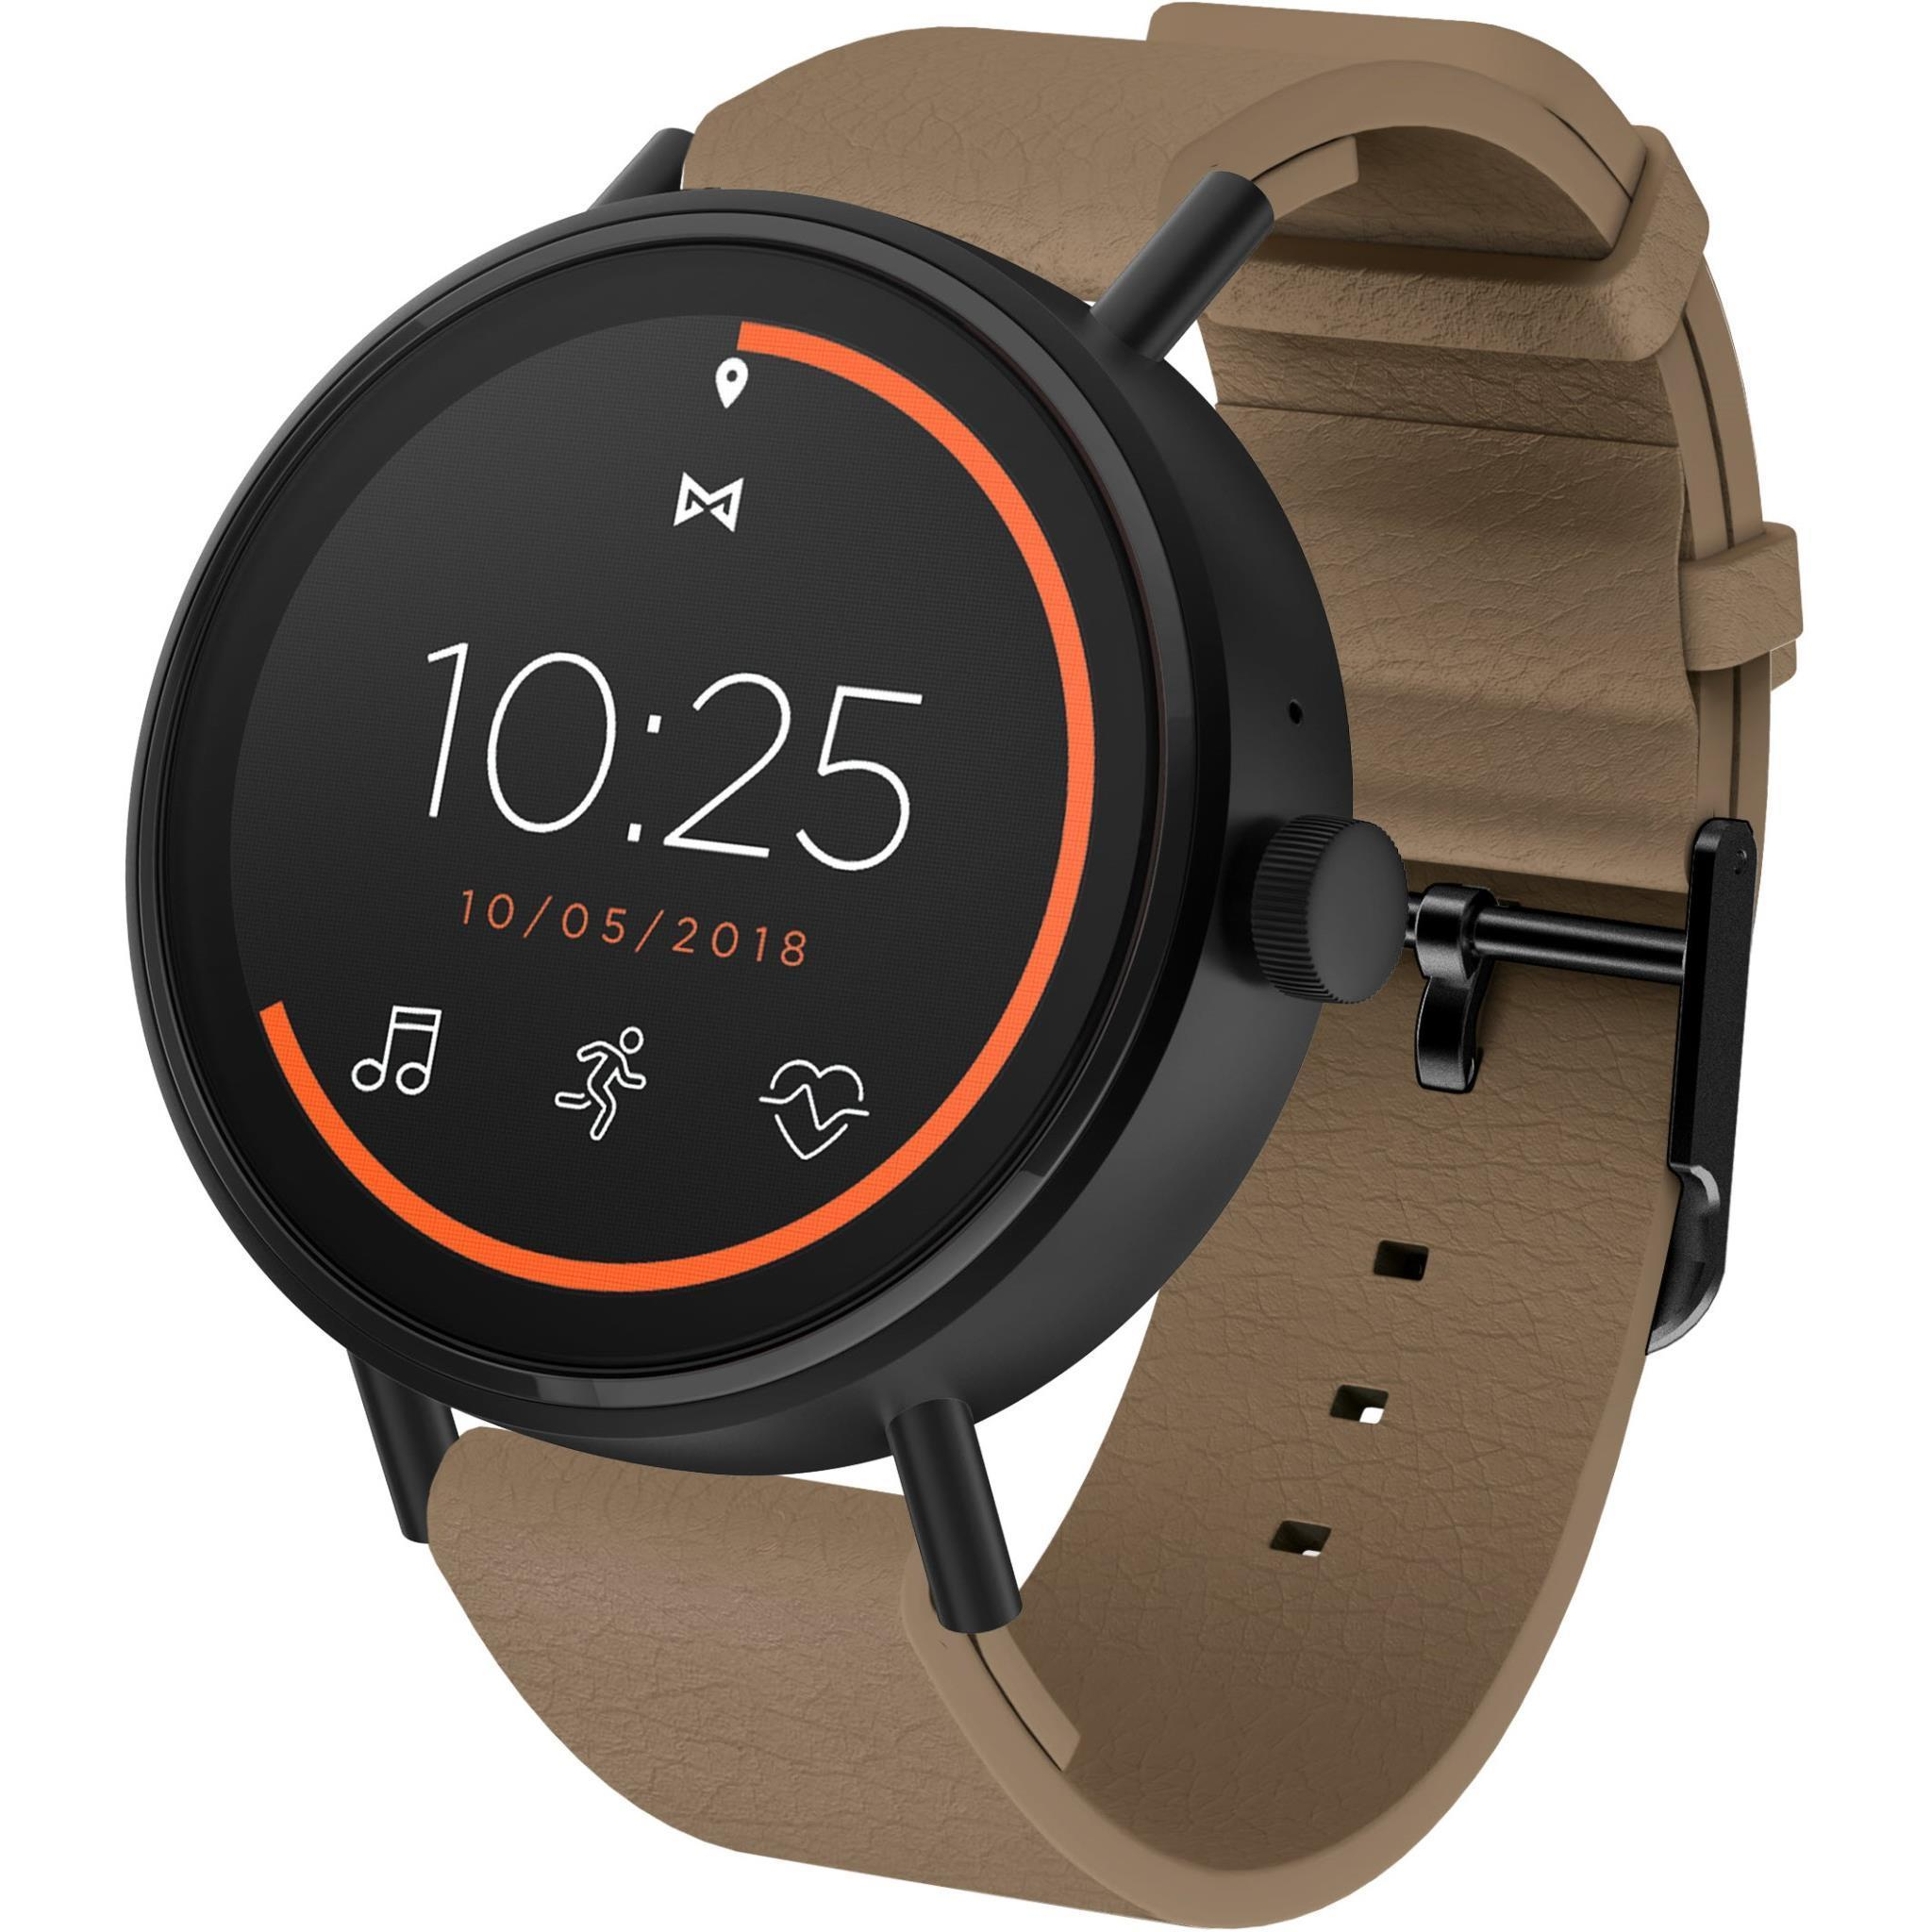 Misfit Vapor 2 46mm Smart Watch (Black/Brown)